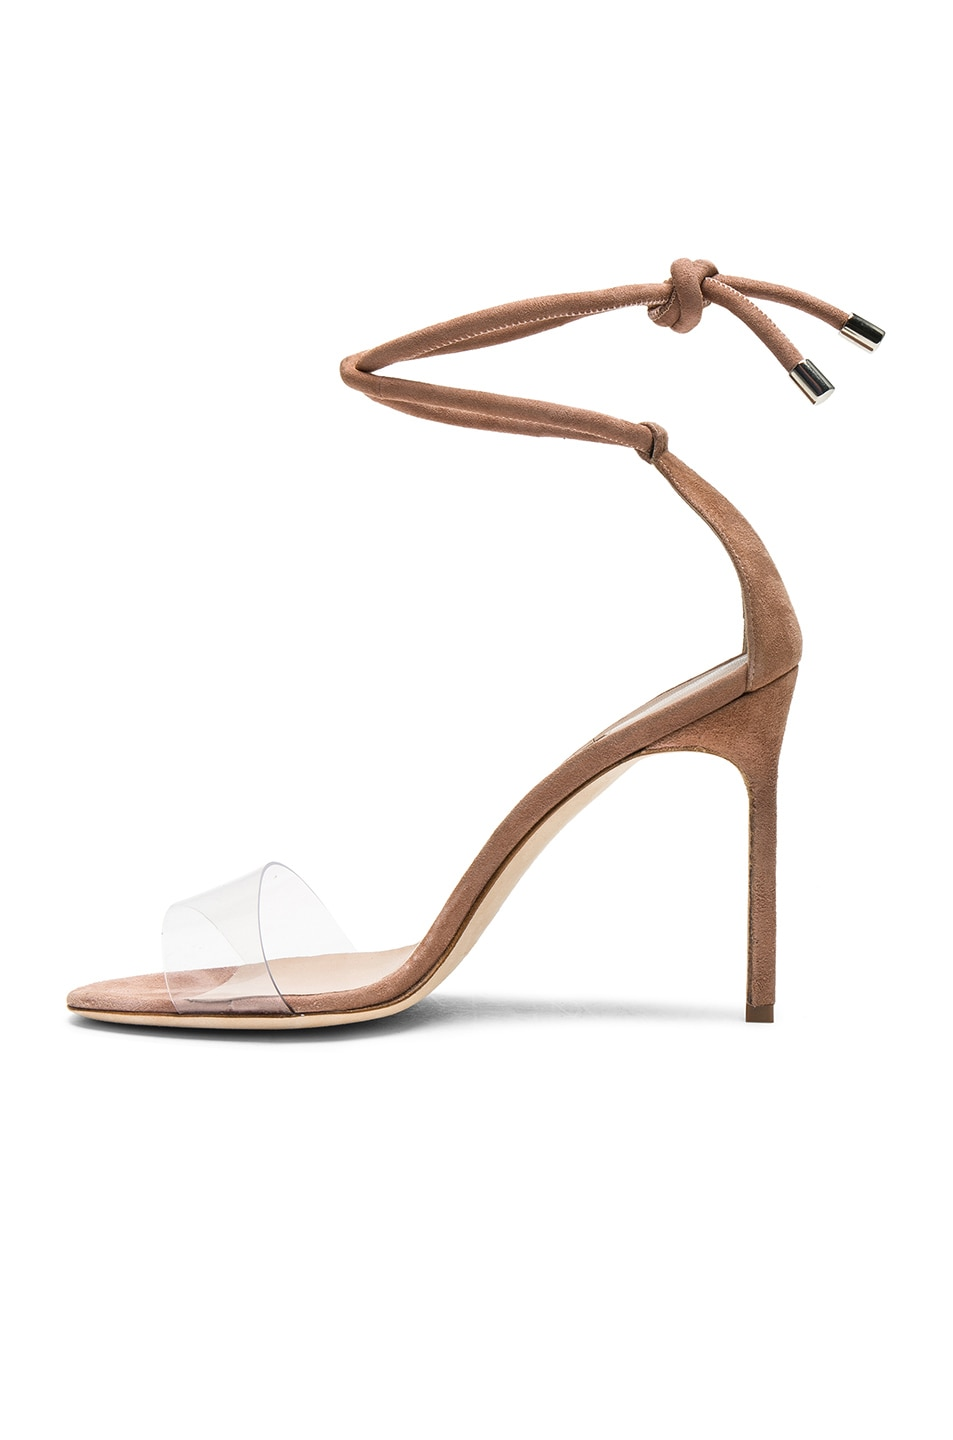 Image 5 of Manolo Blahnik 105 Suede Estro Sandals in Rose Nude Suede